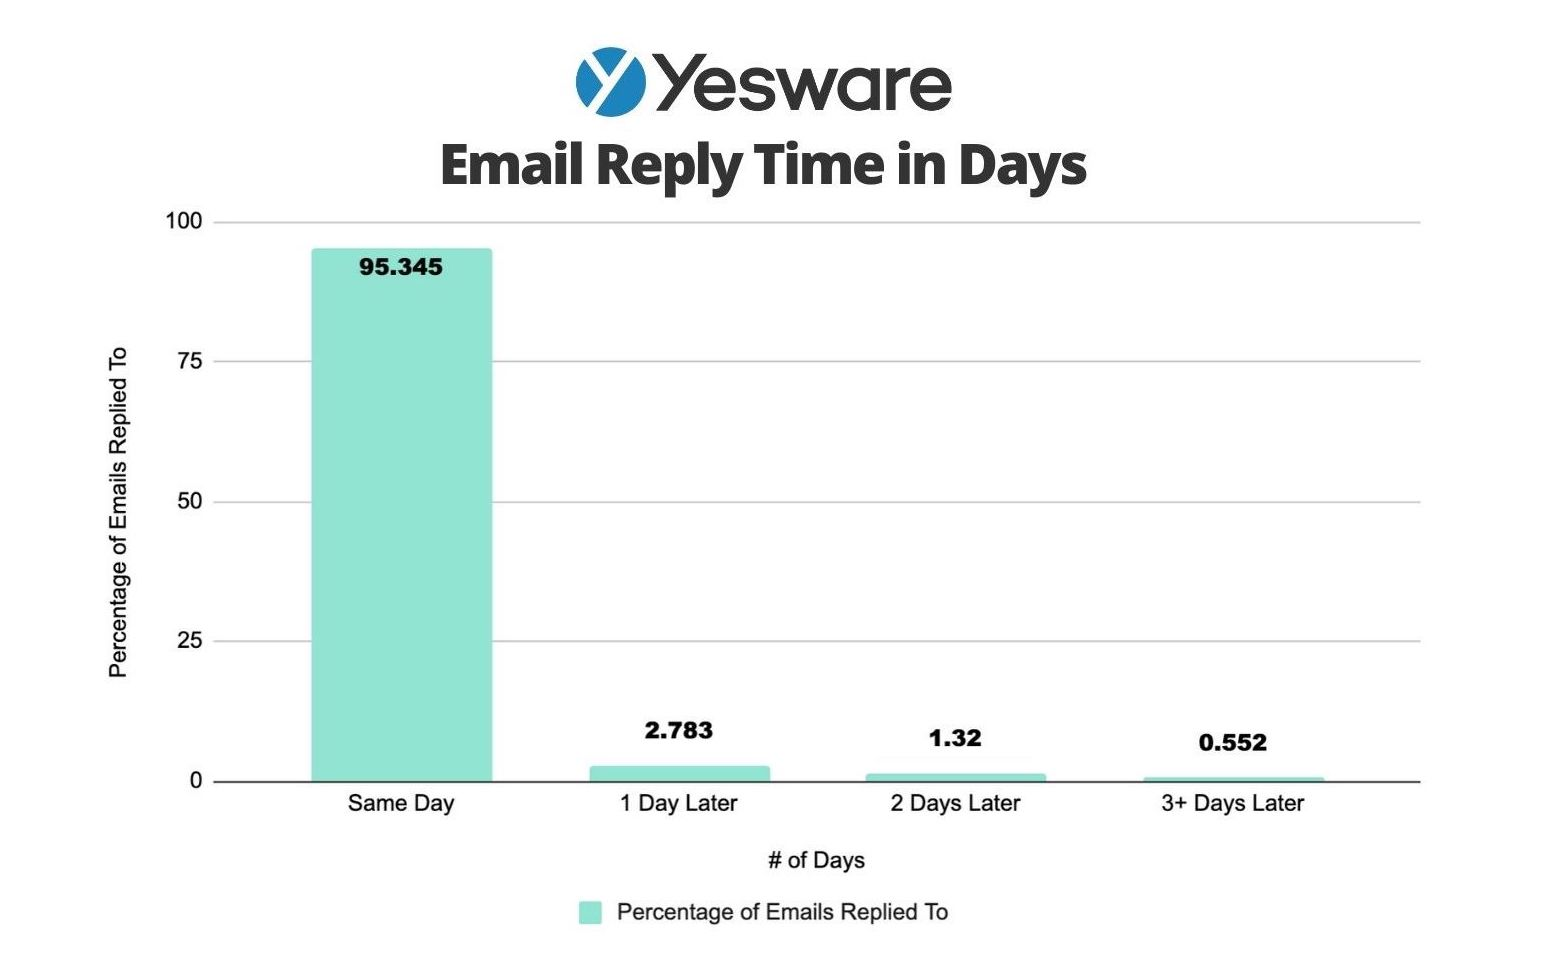 email reply time in days to help shape your follow up strategy